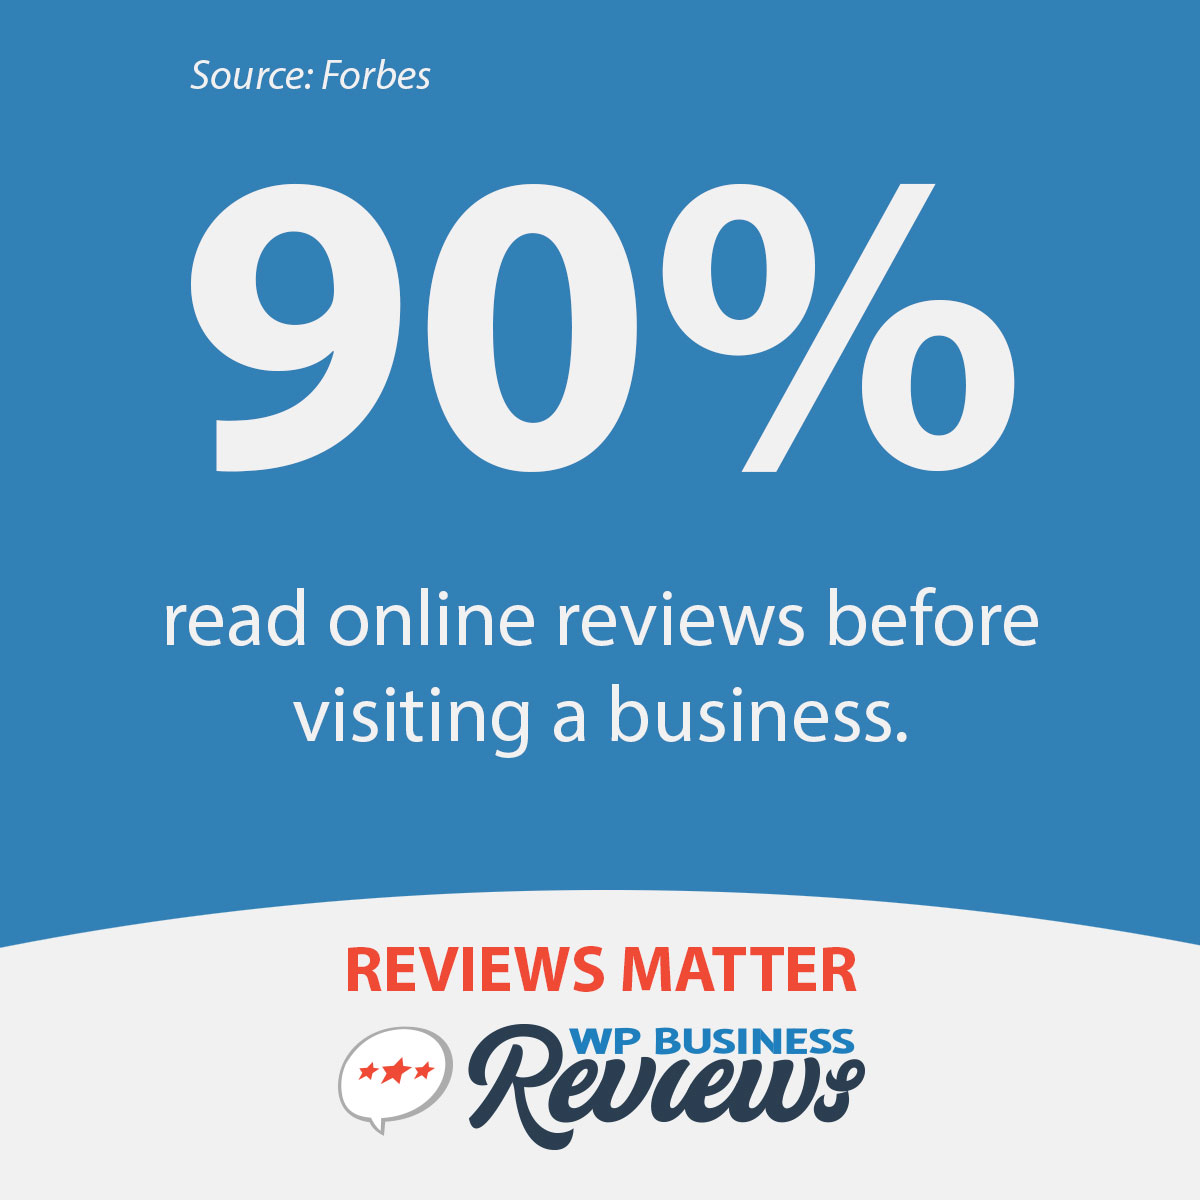 According to Forbes, 90% of people read online reviews before visiting a business.